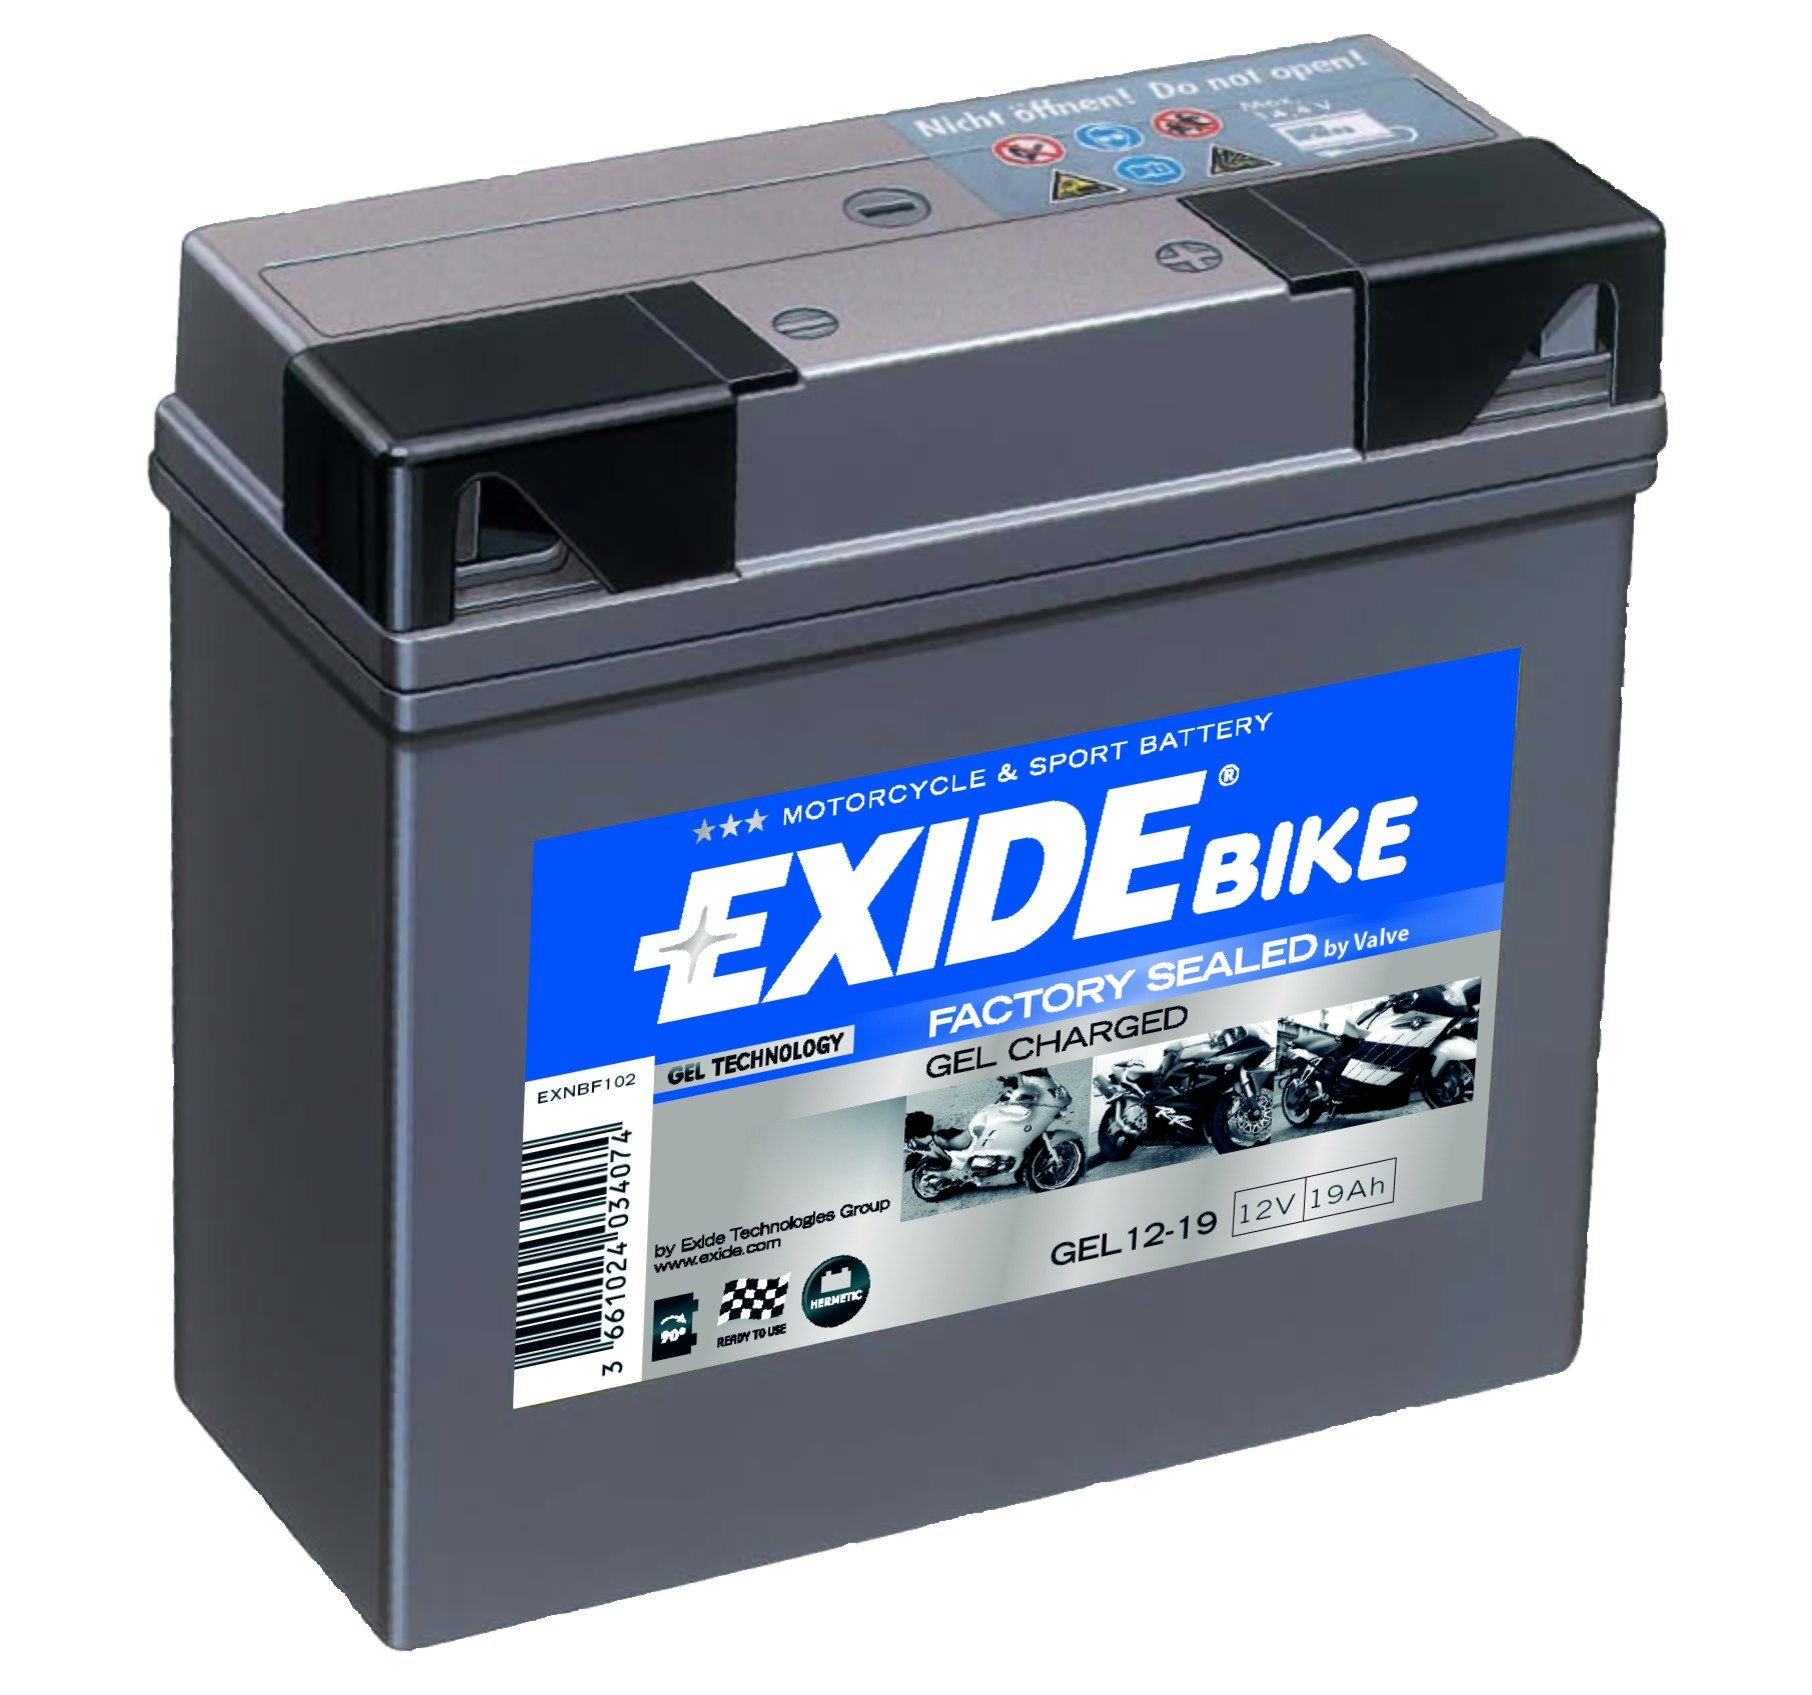 12 volt und 7 anper batterien gell parts of a window frame diagram exide gel g19 12v 19ah batterie ecke batterieservice